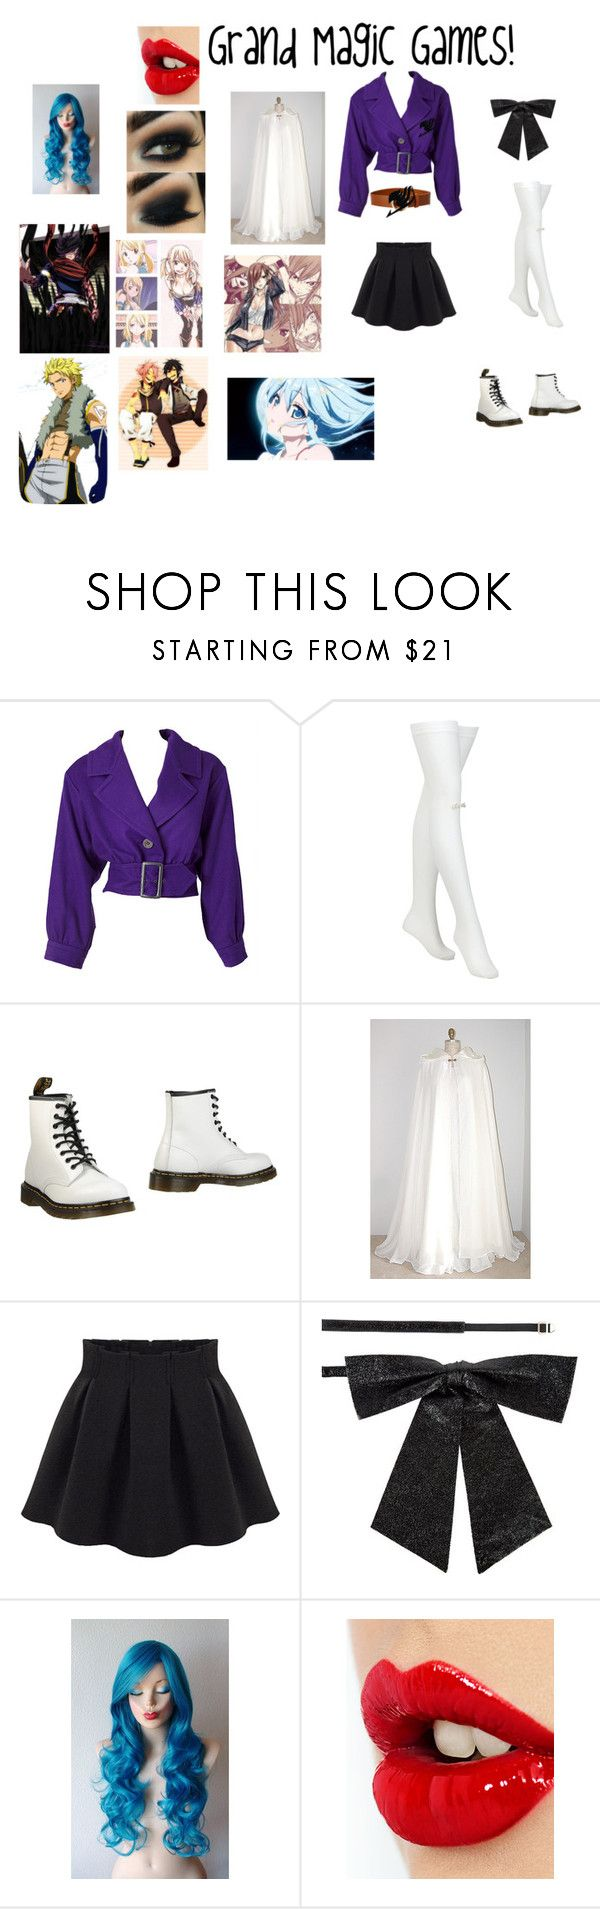 """""""The Grand Magic Games!"""" by reirei-123 ❤ liked on Polyvore featuring Yves Saint Laurent, Frame, Chantal Thomass, Dr. Martens and Charlotte Tilbury"""